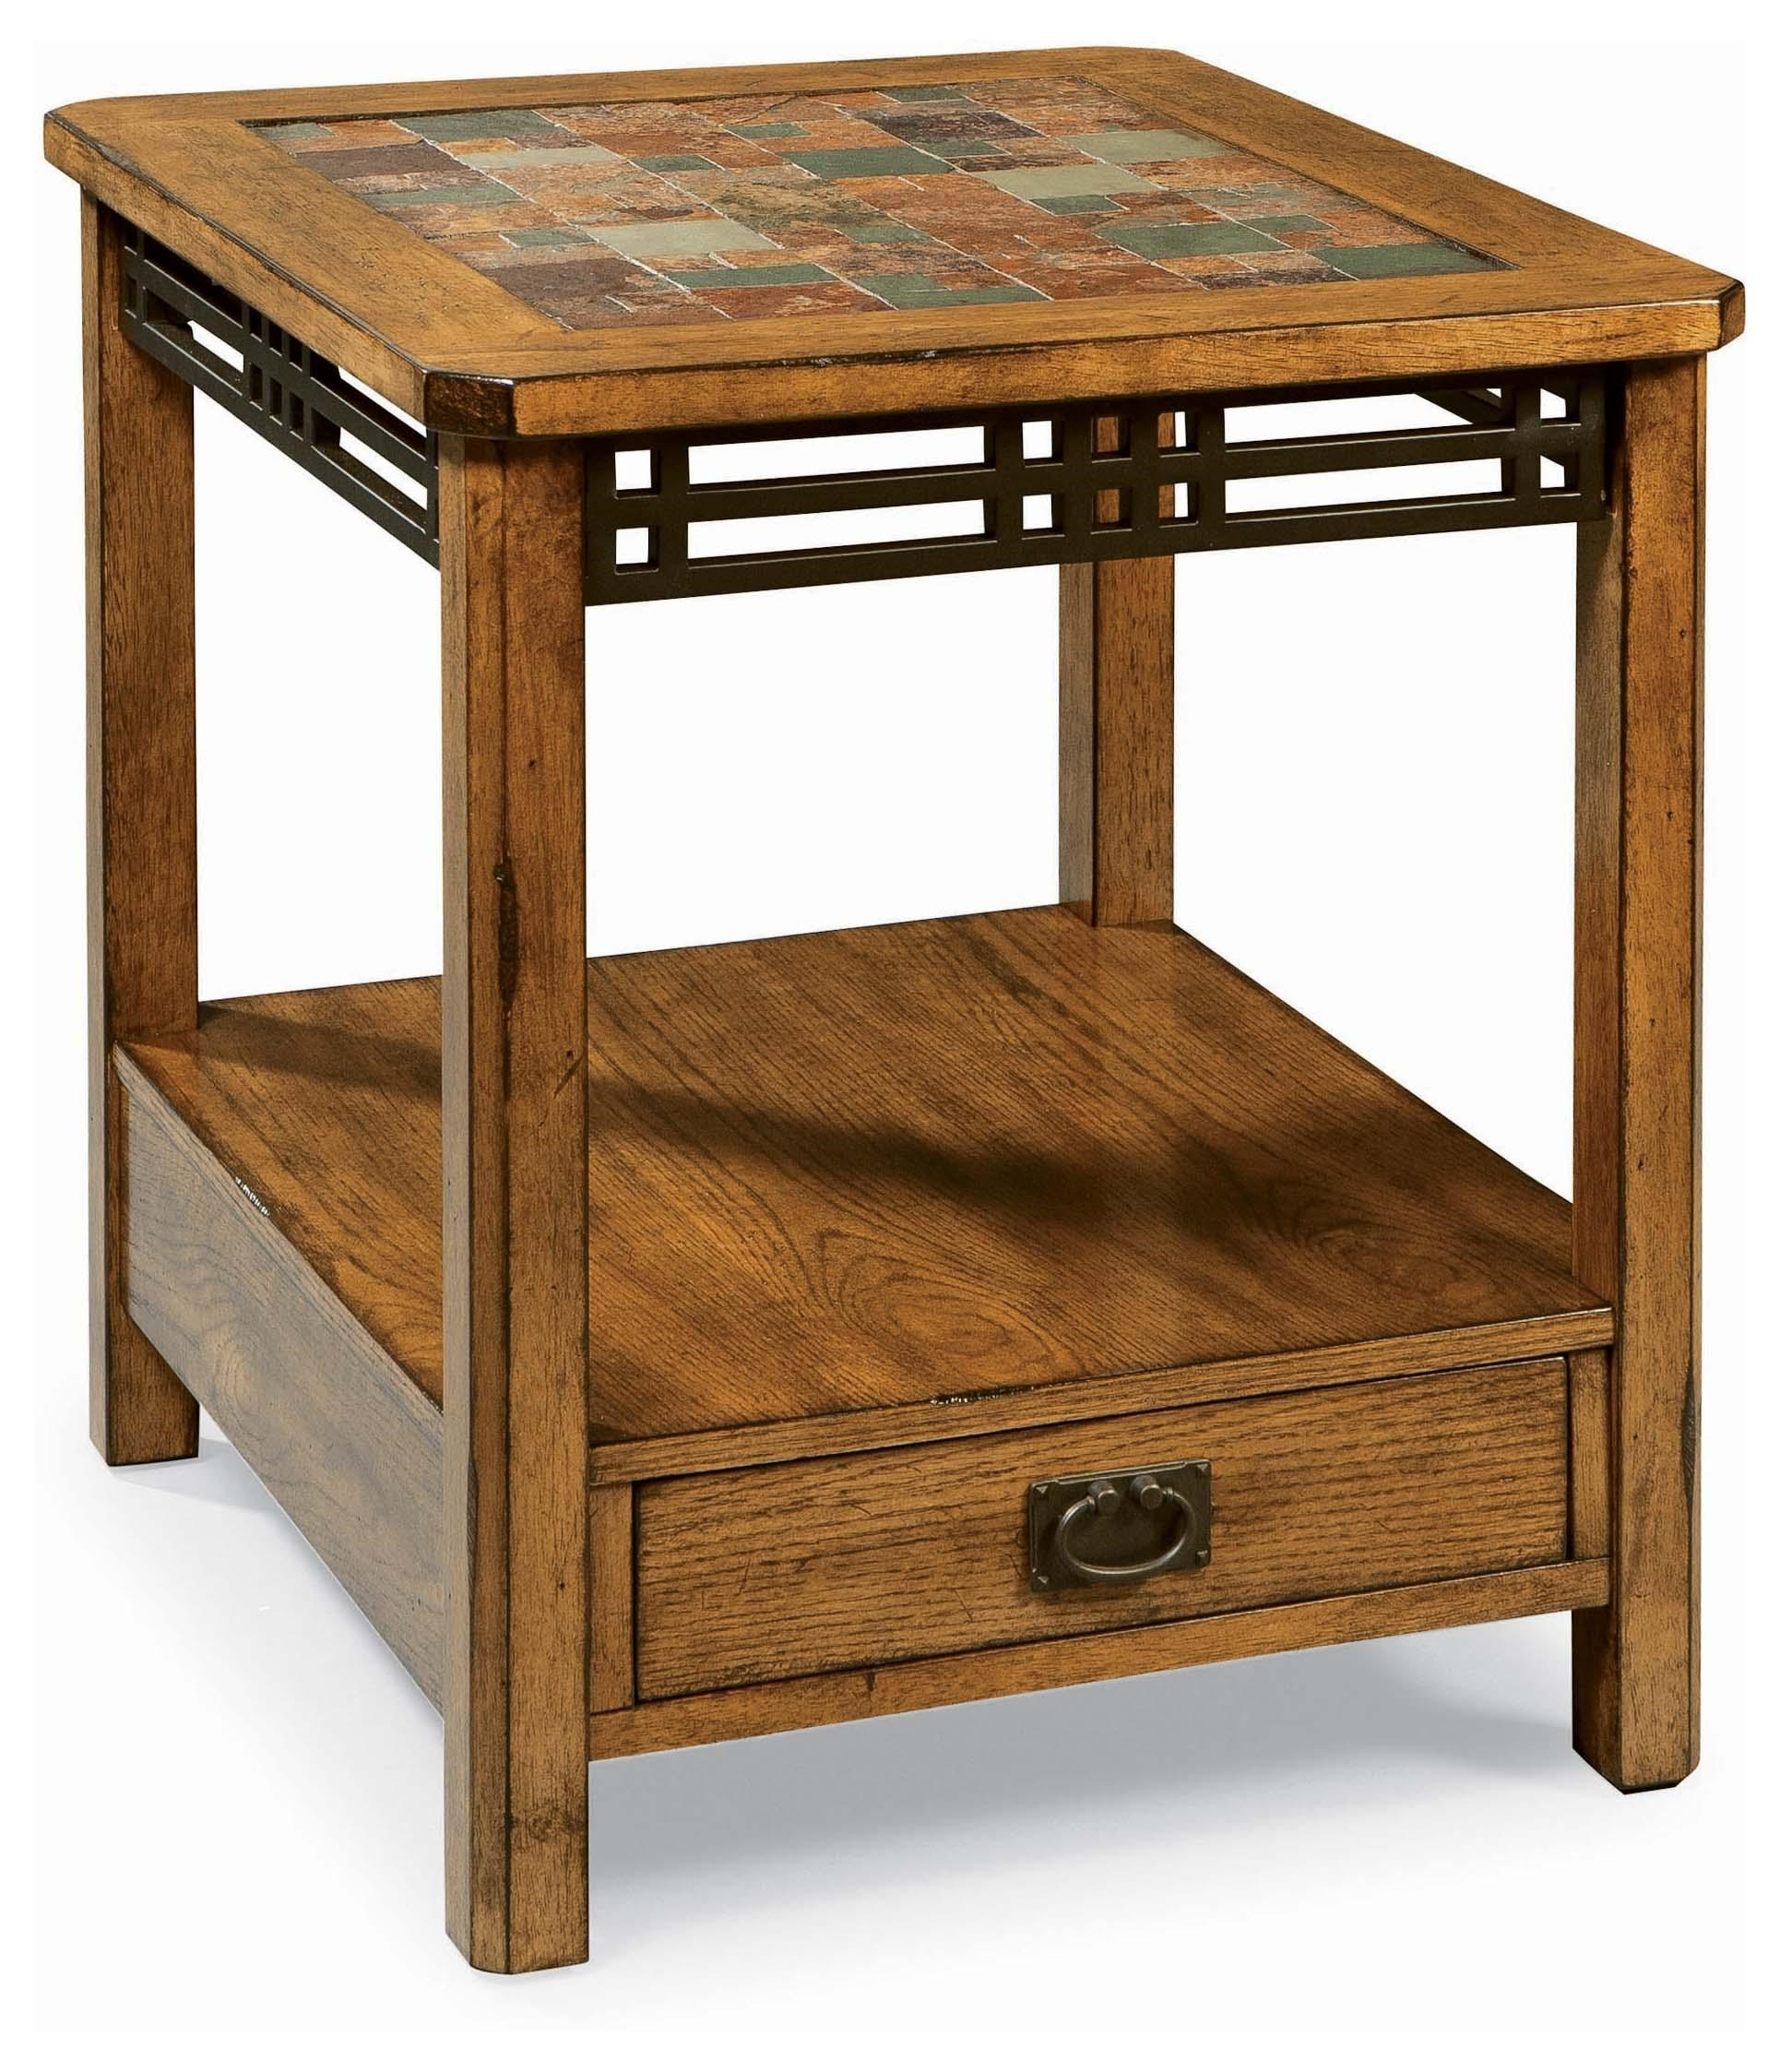 Peters Revington American Craftsman Oak End Table With Slate Tile Top